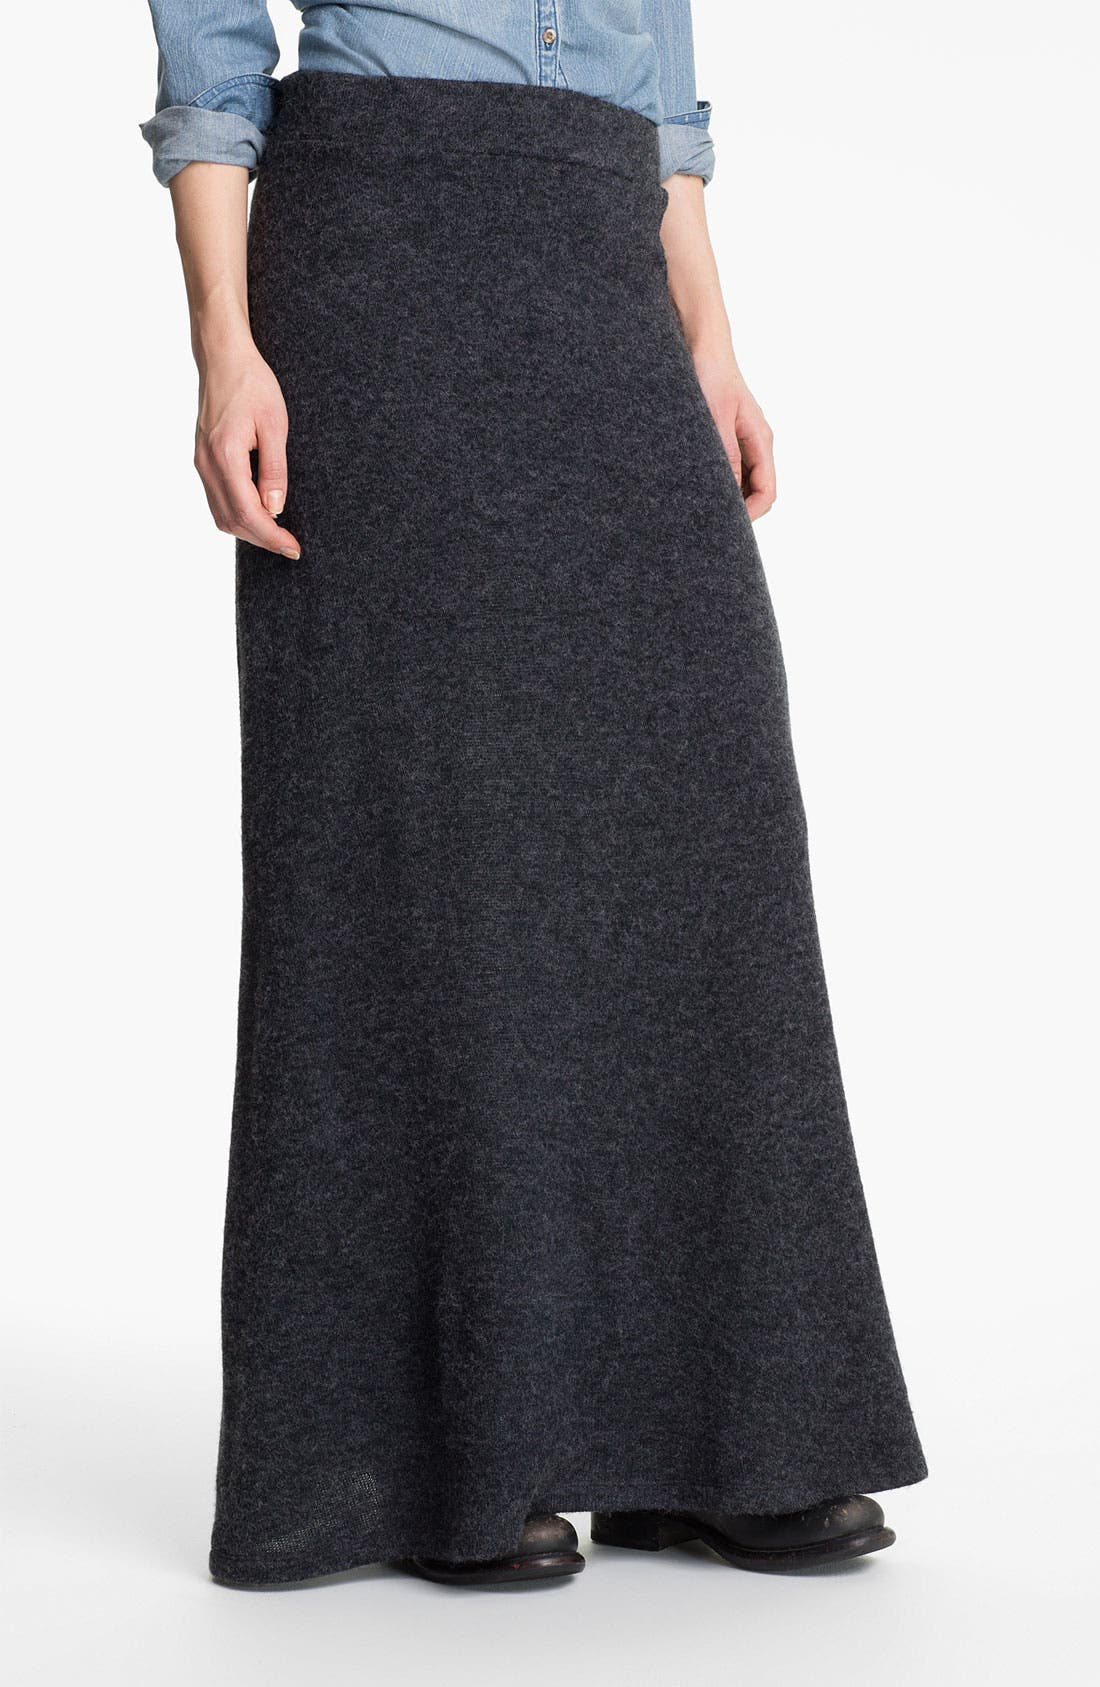 Alternate Image 1 Selected - Lily White Knit Maxi Skirt (Juniors)